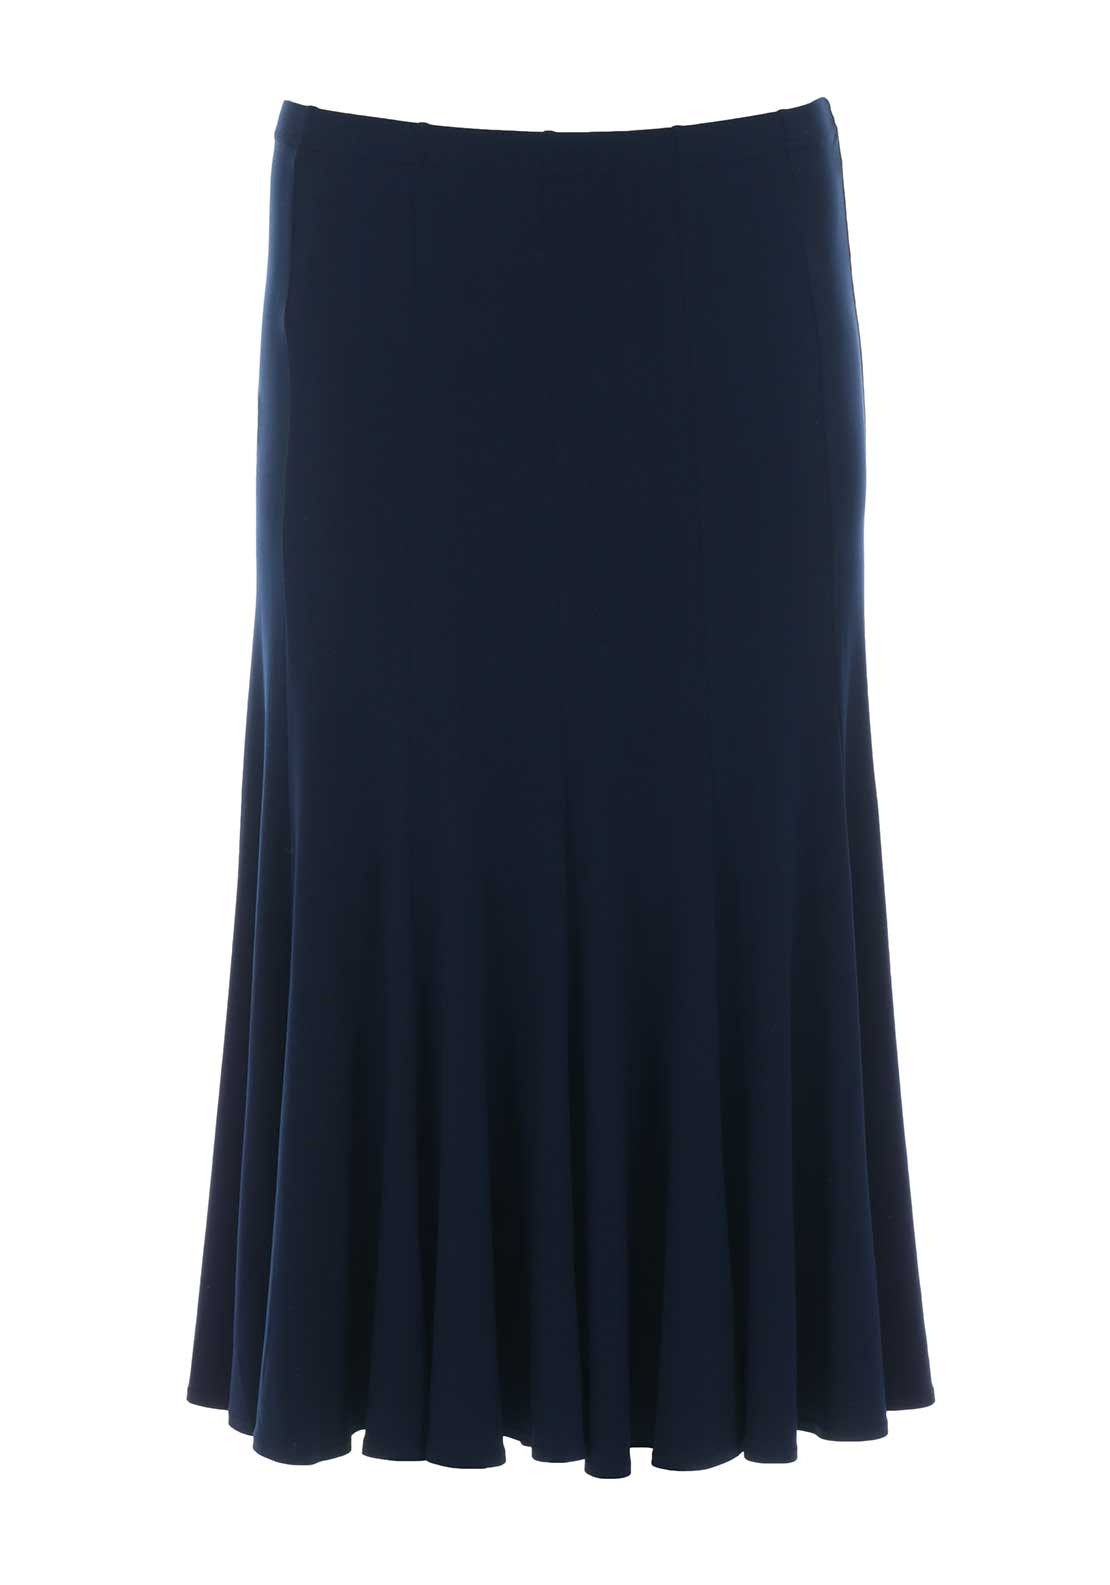 georgede fit and flare midi skirt navy mcelhinneys